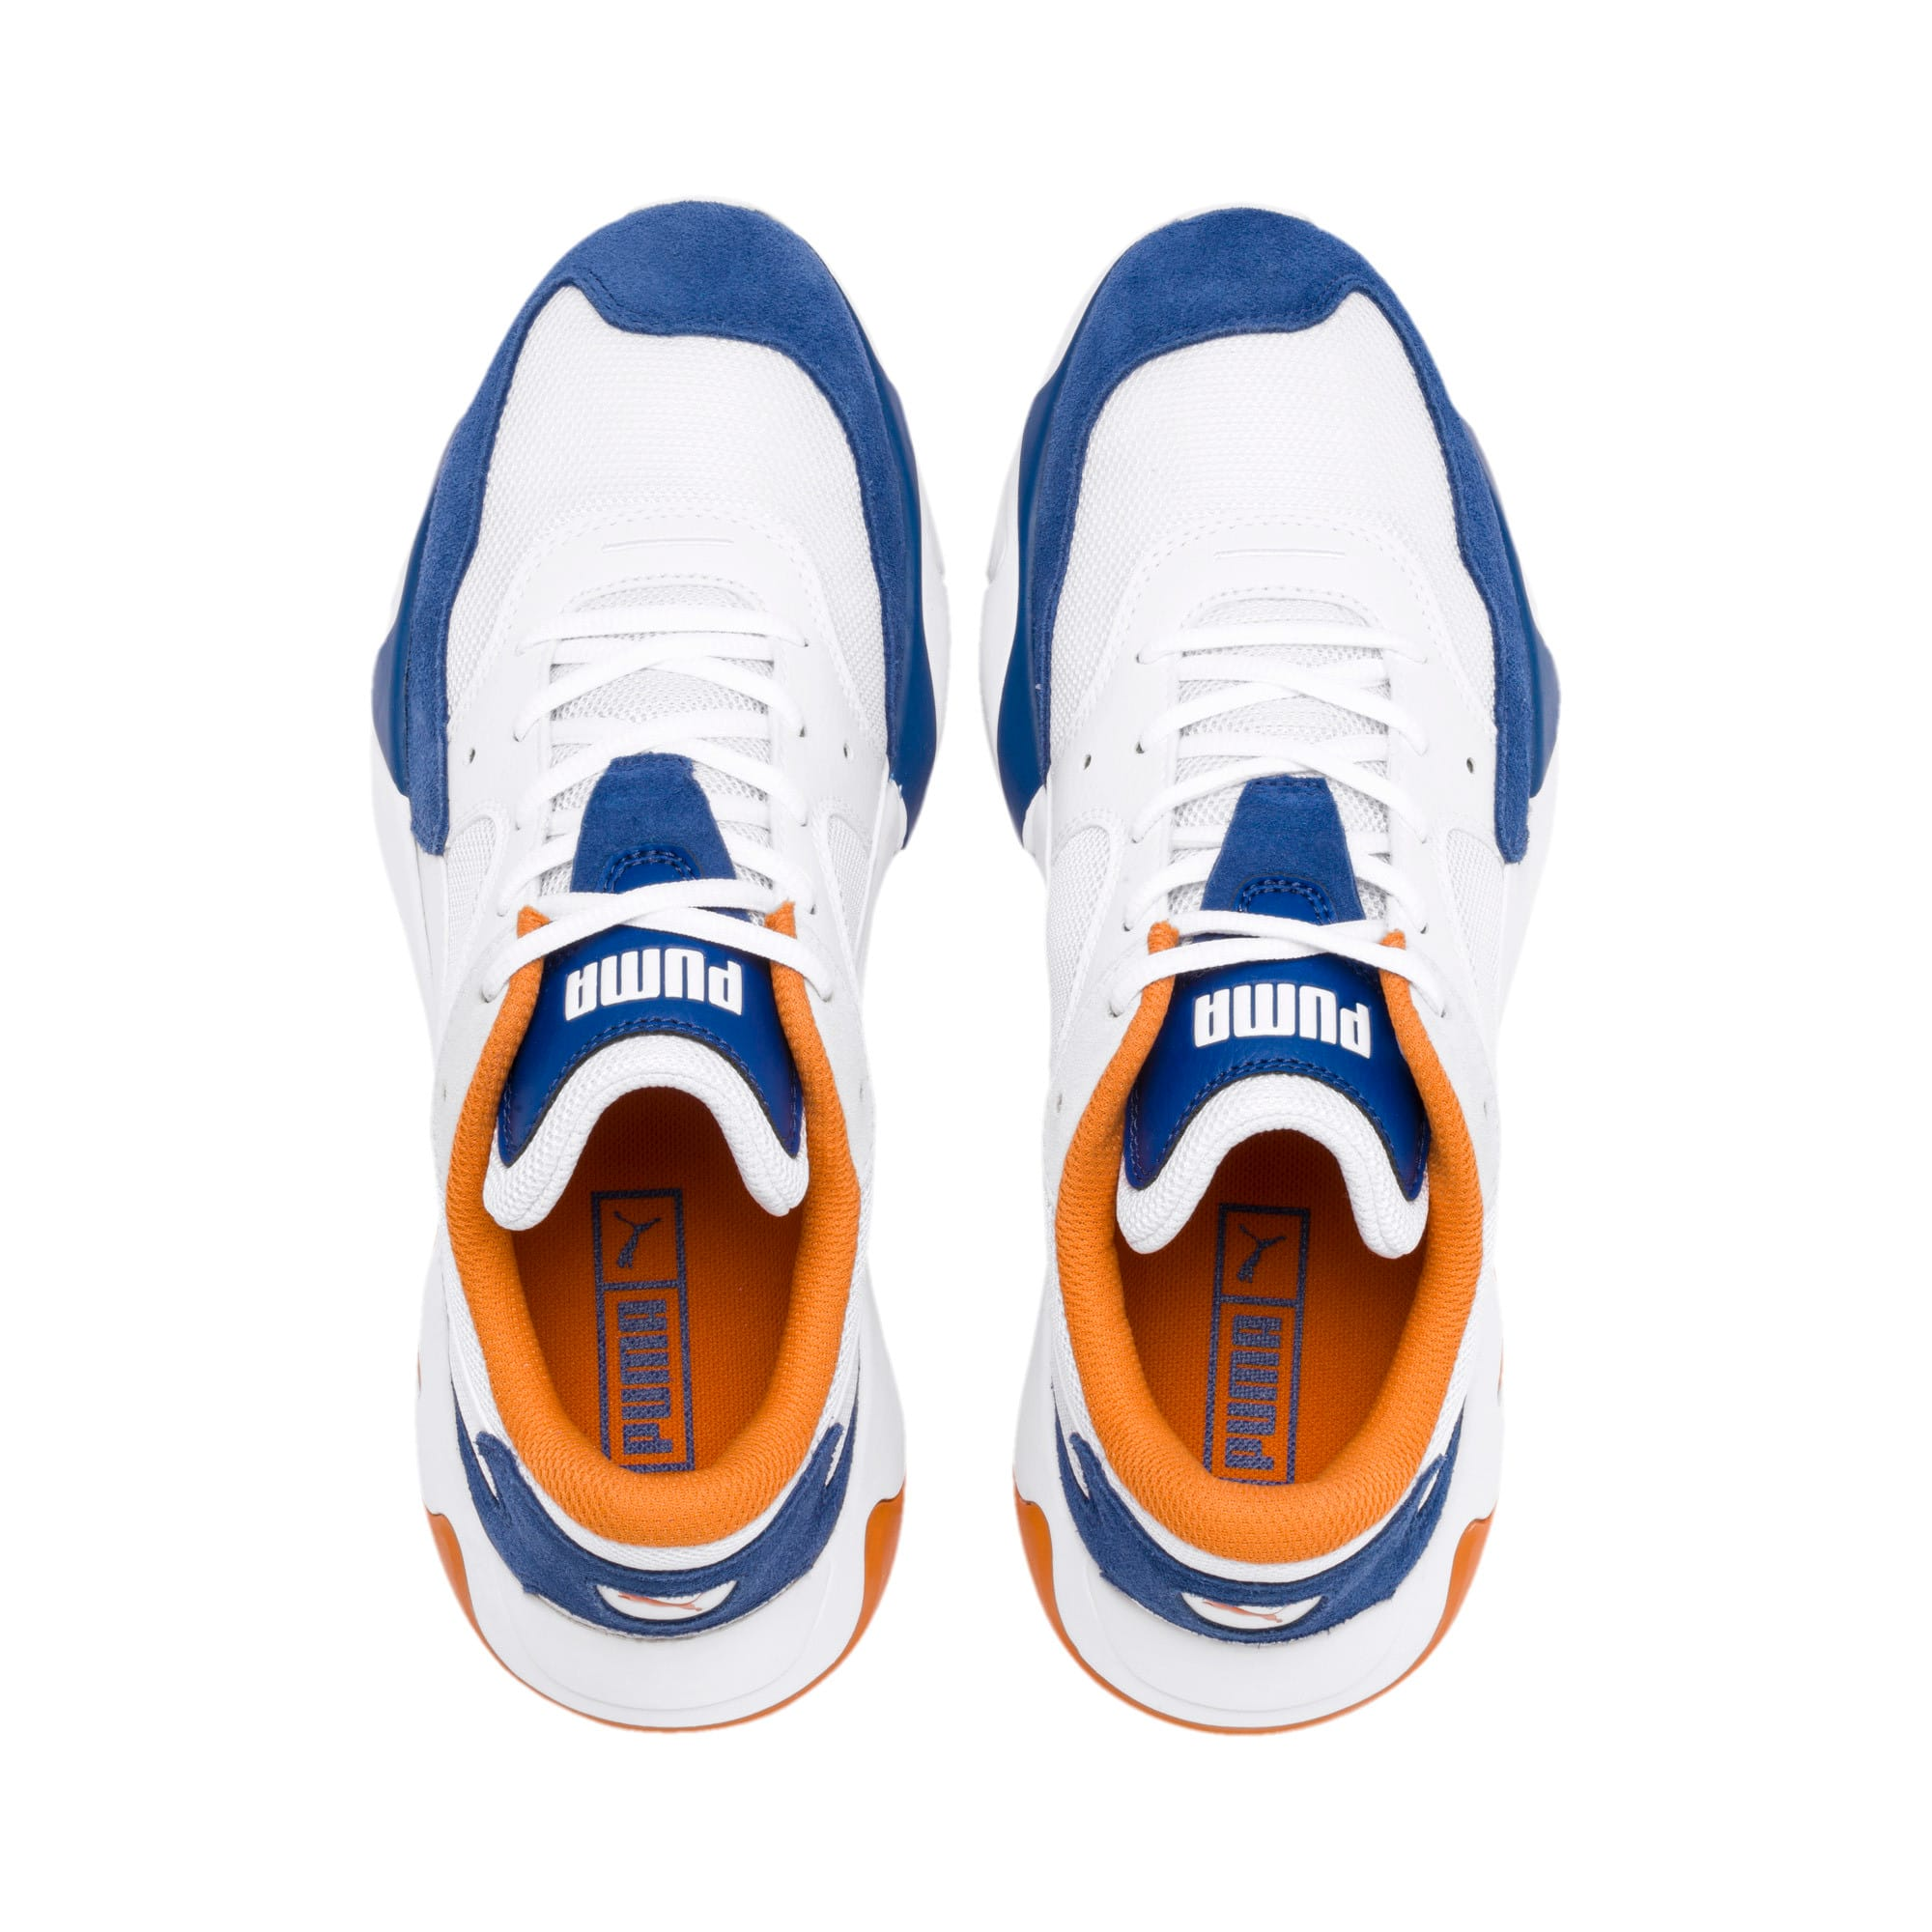 Thumbnail 7 of Storm Adrenaline Sneakers, Galaxy Blue-Puma White, medium